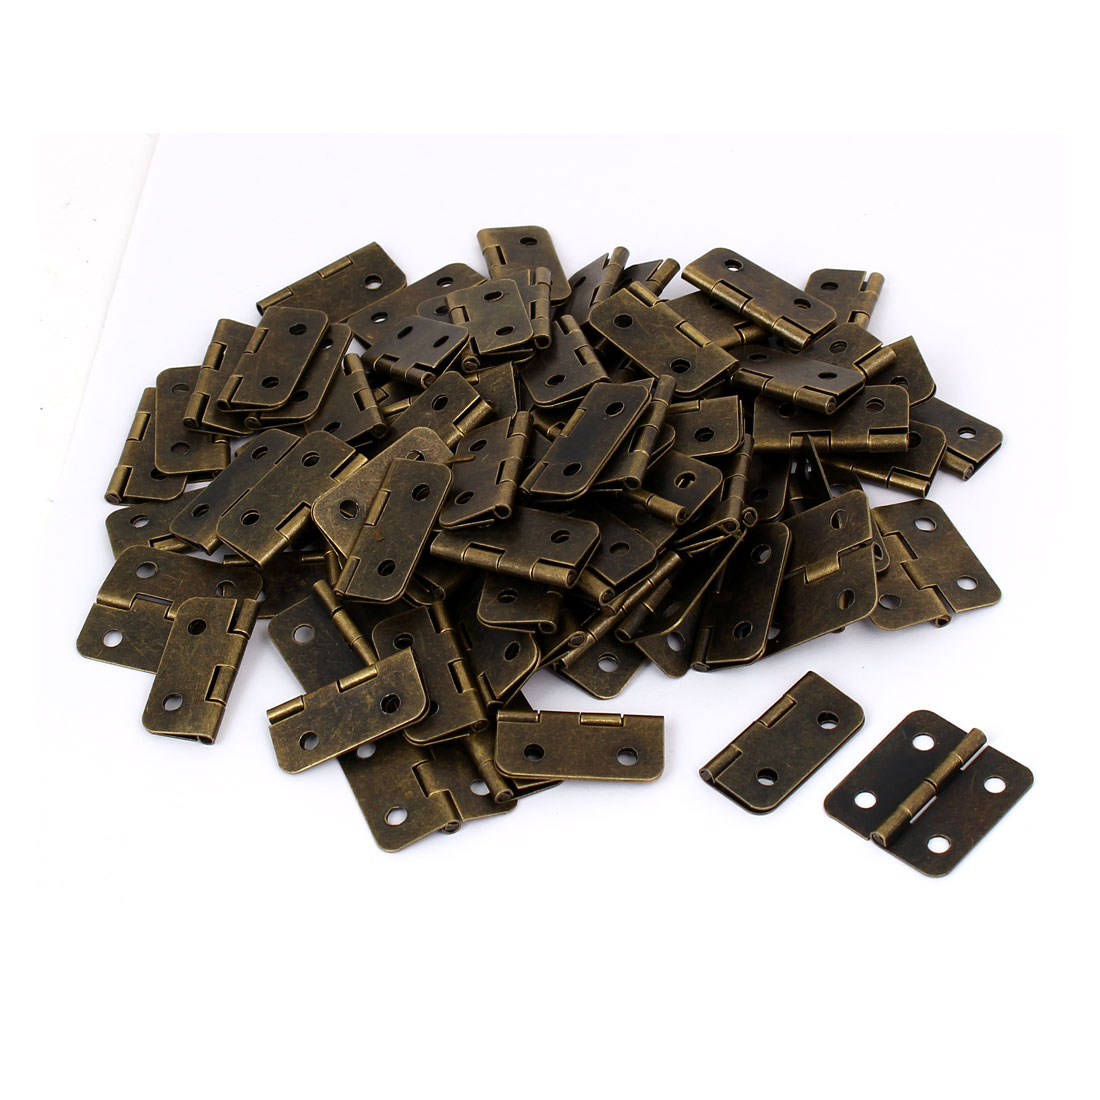 "Drawer Cabinet Door Metal Foldable Butt Hinges Bronze Tone 1.2"" Length 100PCS"